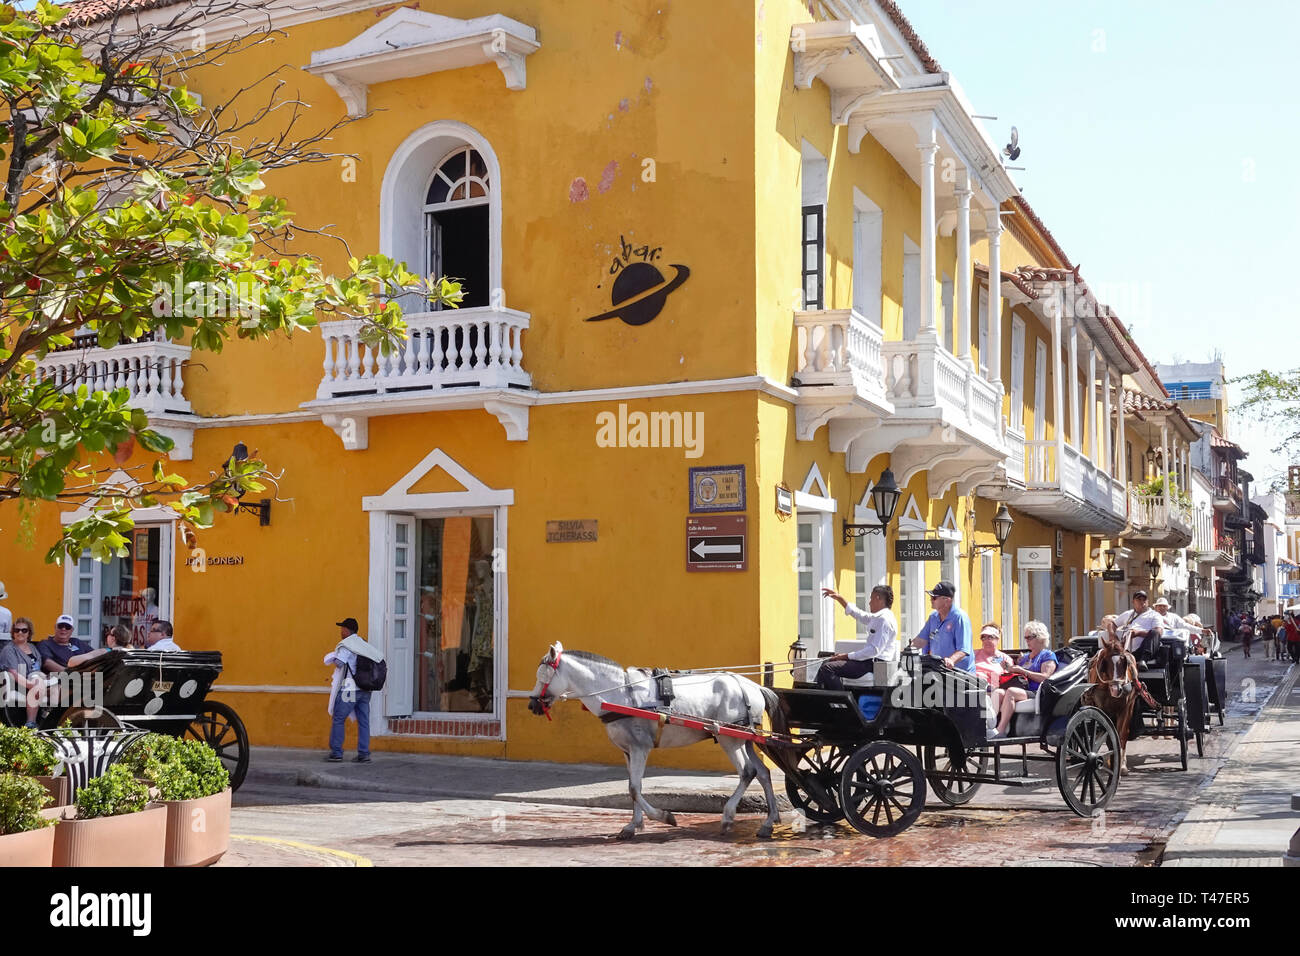 Colombia, Cartagena, Old Walled City Center centre, Centro, Plaza de Santa Teresa, colonial architecture, horse carriage tour, sightseeing visitors tr Stock Photo